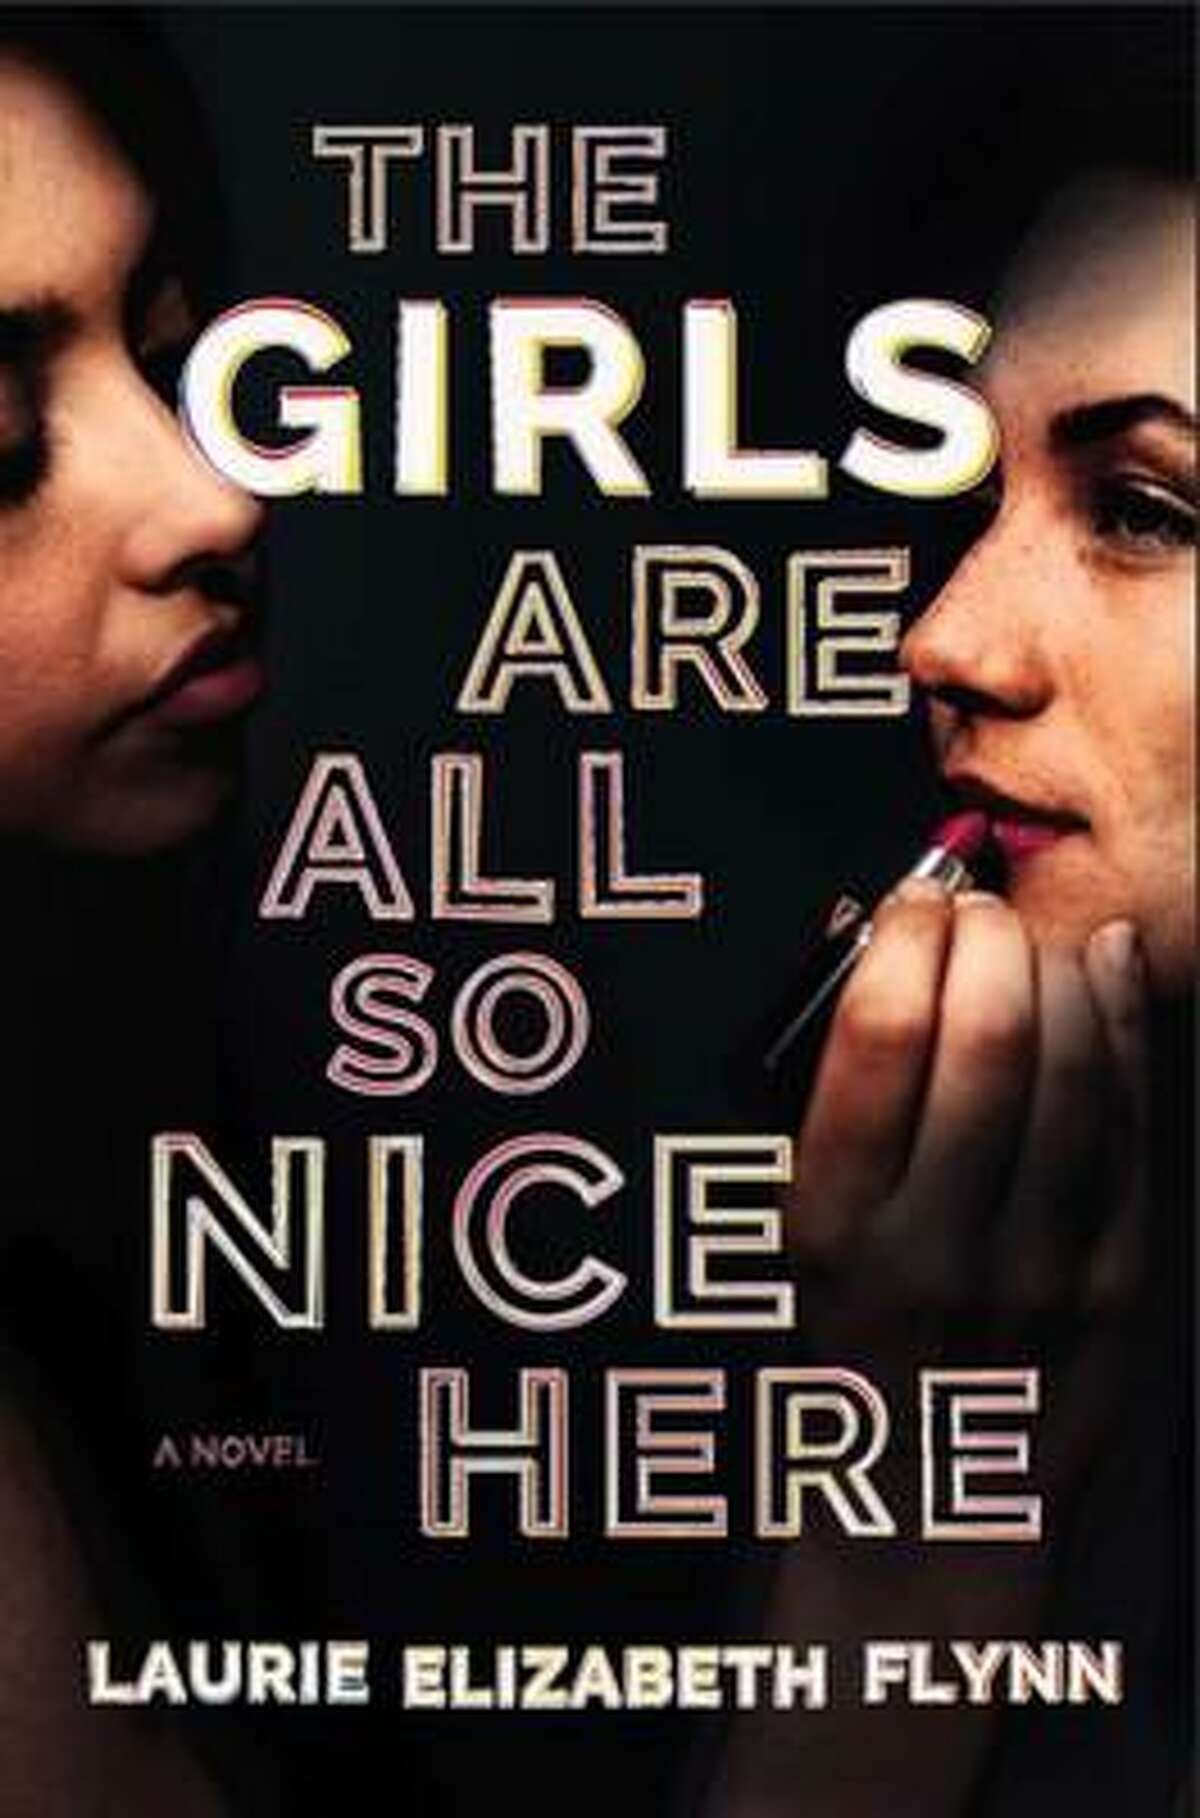 """Laurie Elizabeth Flynn wrote """"The Girls Here Are All So Nice."""""""